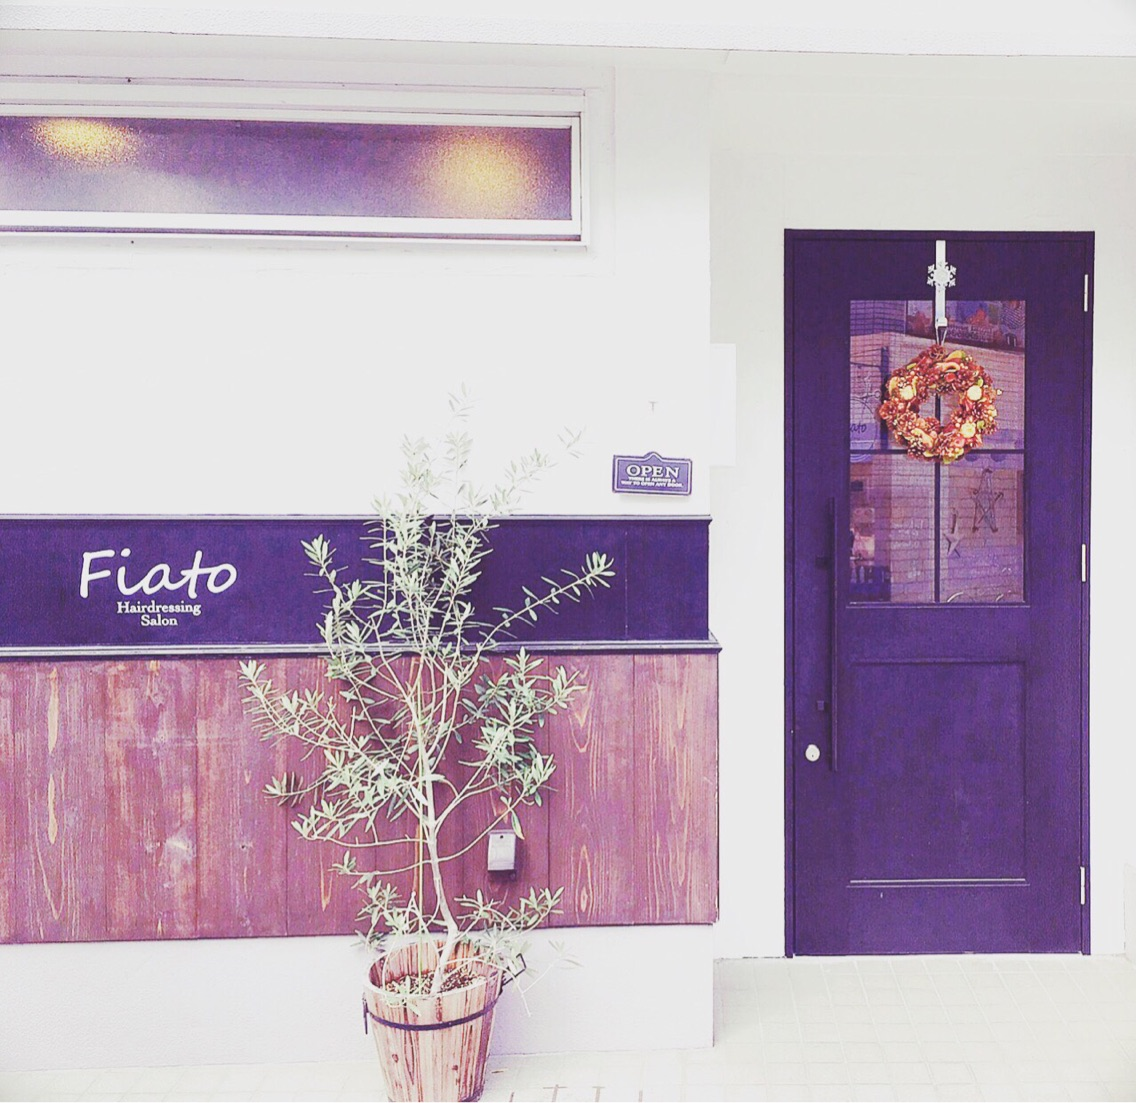 Fiato Hairdressing Salon【フィアート】